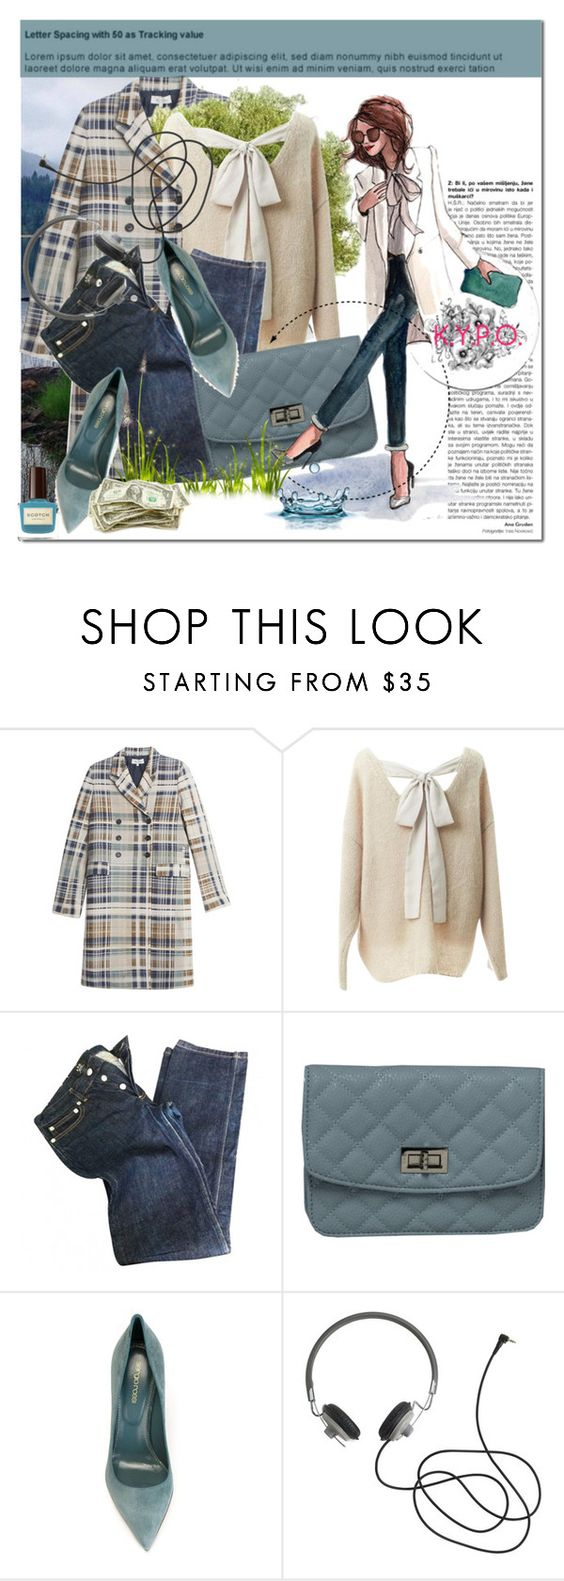 """""""Kick Your Pumps Off Sponsored Contest - Win this Purse!!!"""" by pentacla ❤ liked on Polyvore featuring Paul & Joe, Relaxfeel, A.P.C. and Sergio Rossi"""